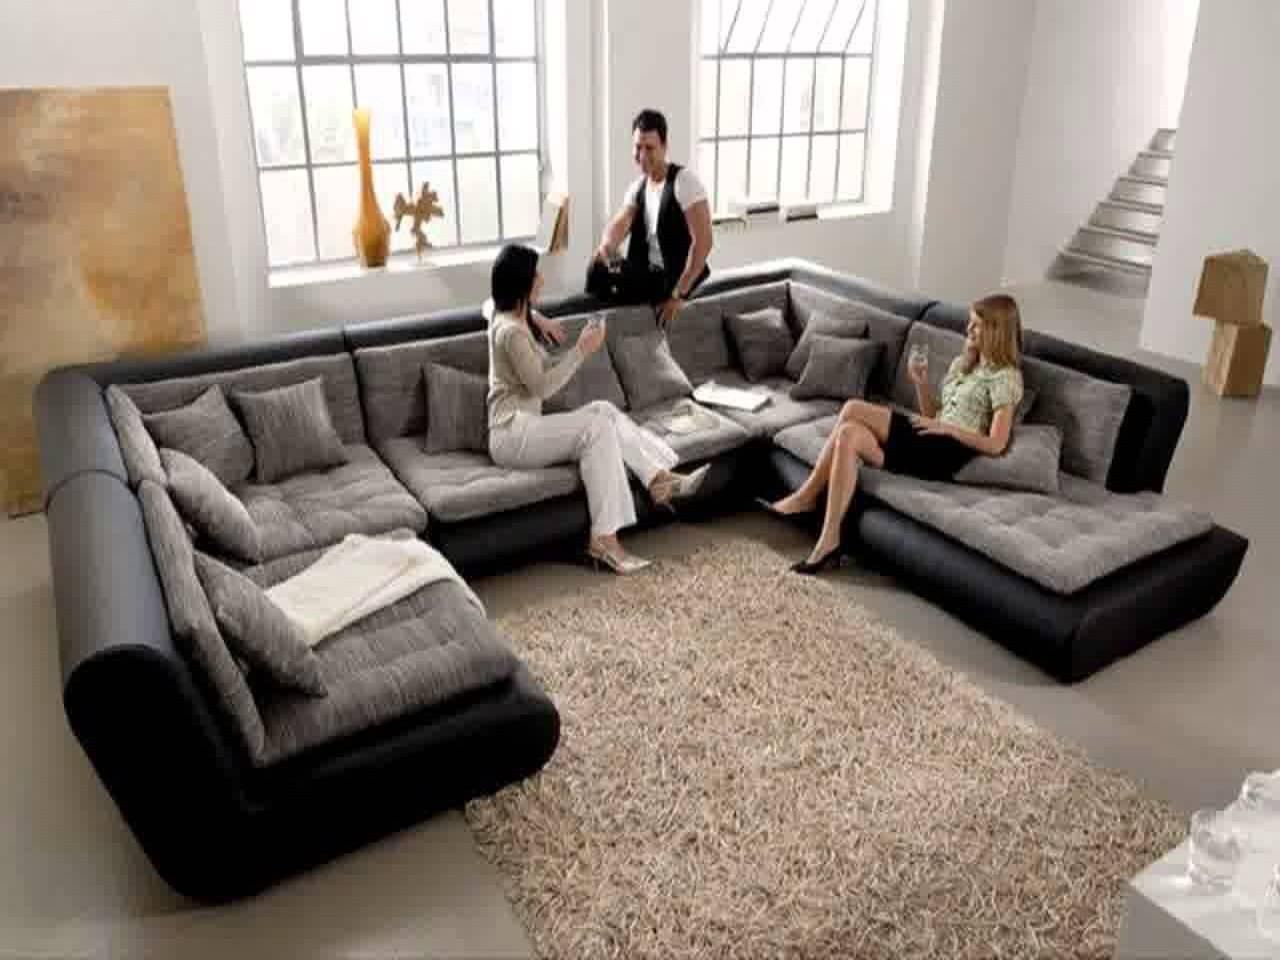 Sofas: Oversized Sofas   Sectional Sofa Bed   Oversized Sofa Chairs Pertaining To Big Sofa Chairs (Image 20 of 20)